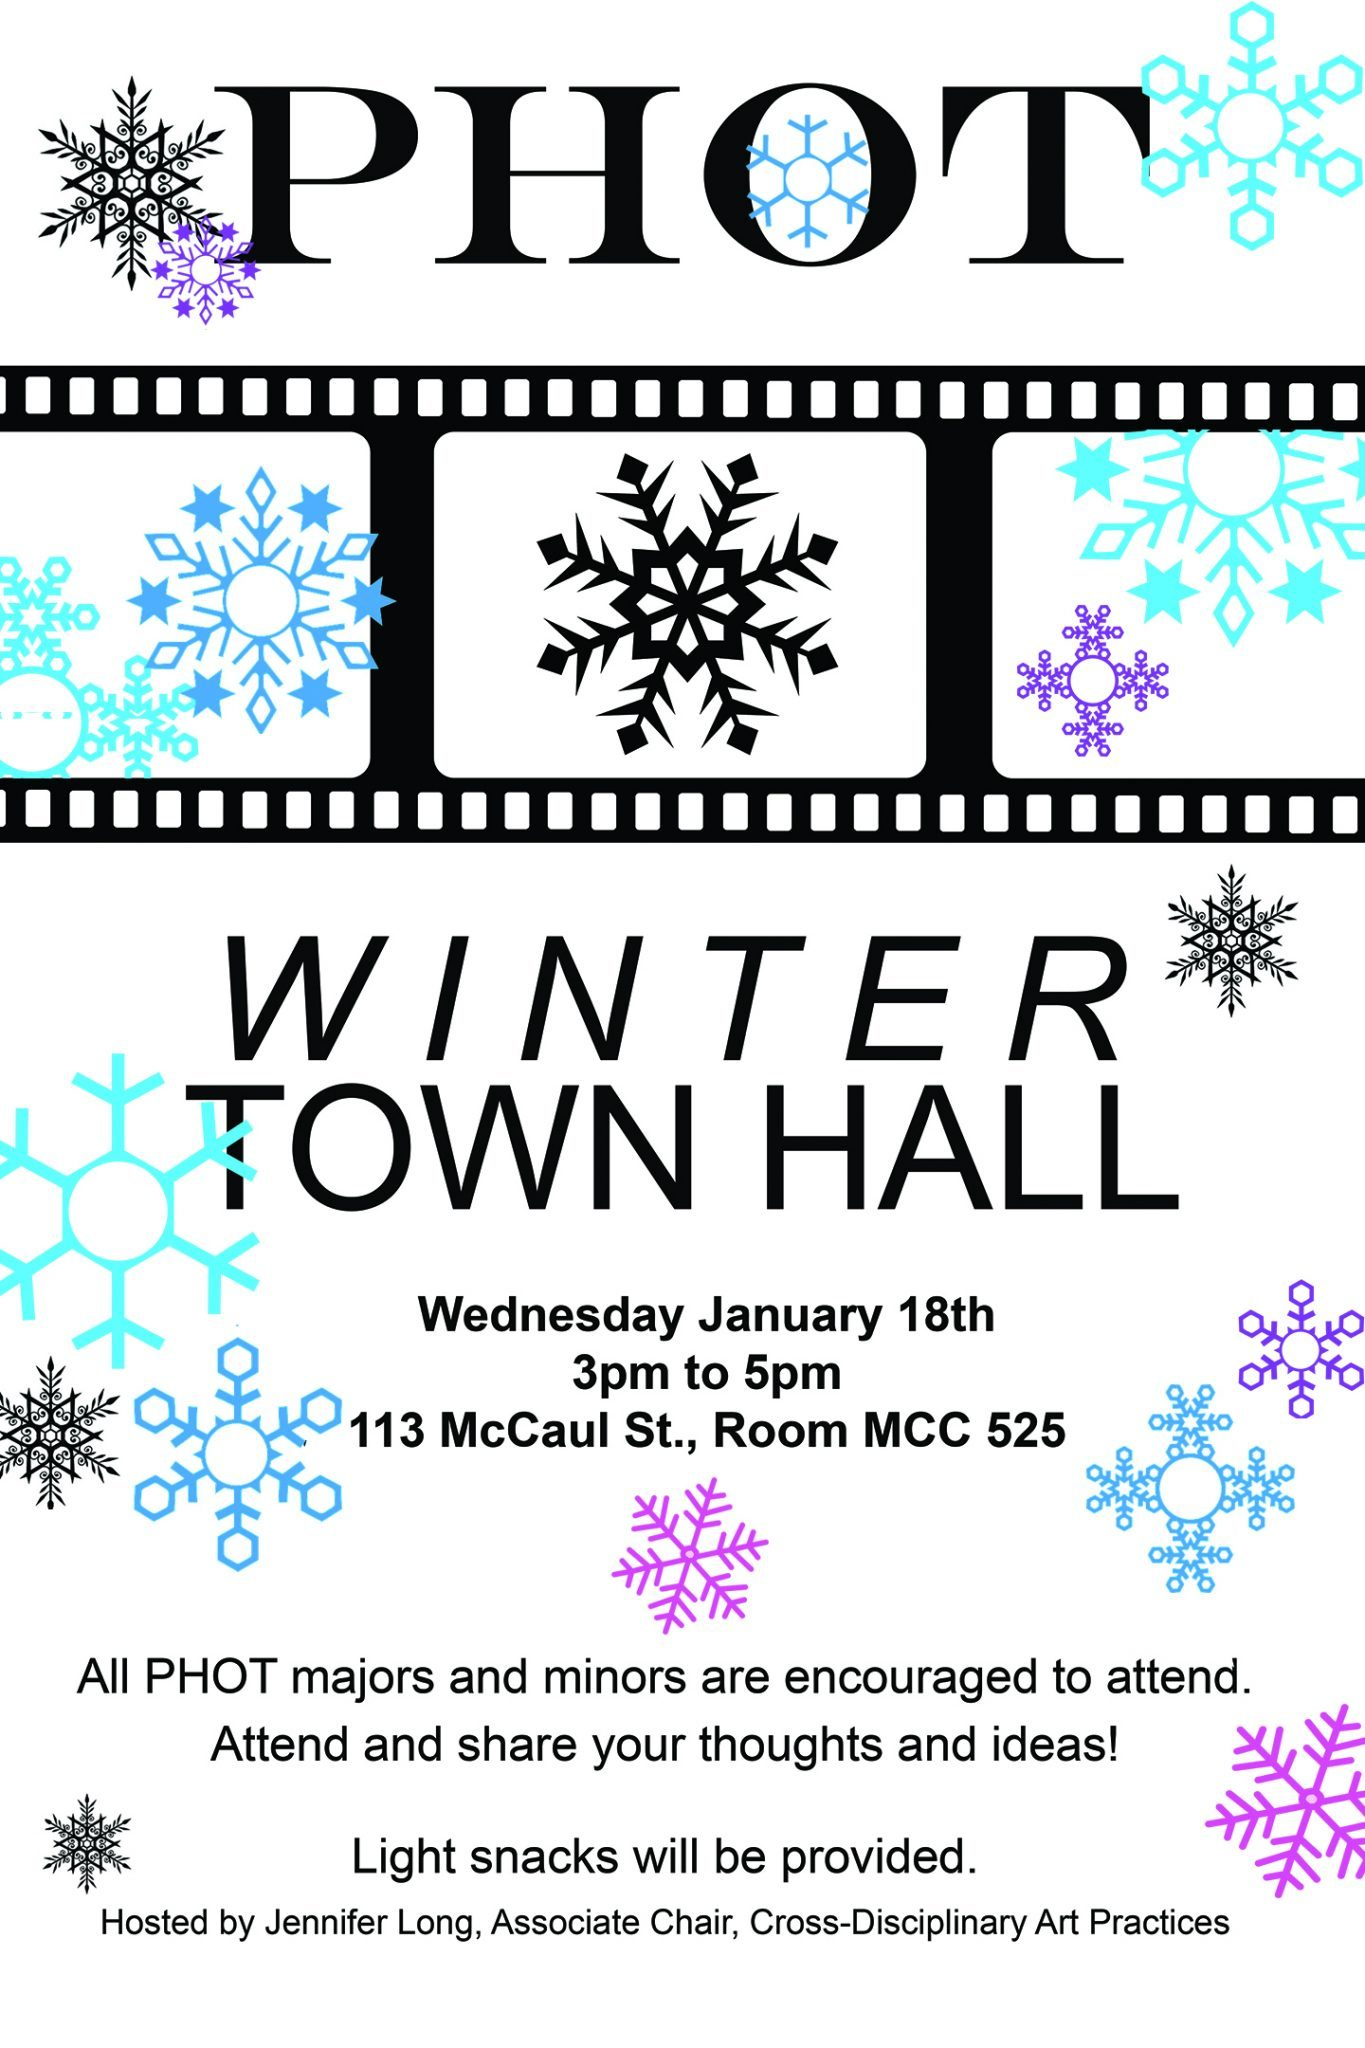 computer-phot-town-hall-poster-2017-winter